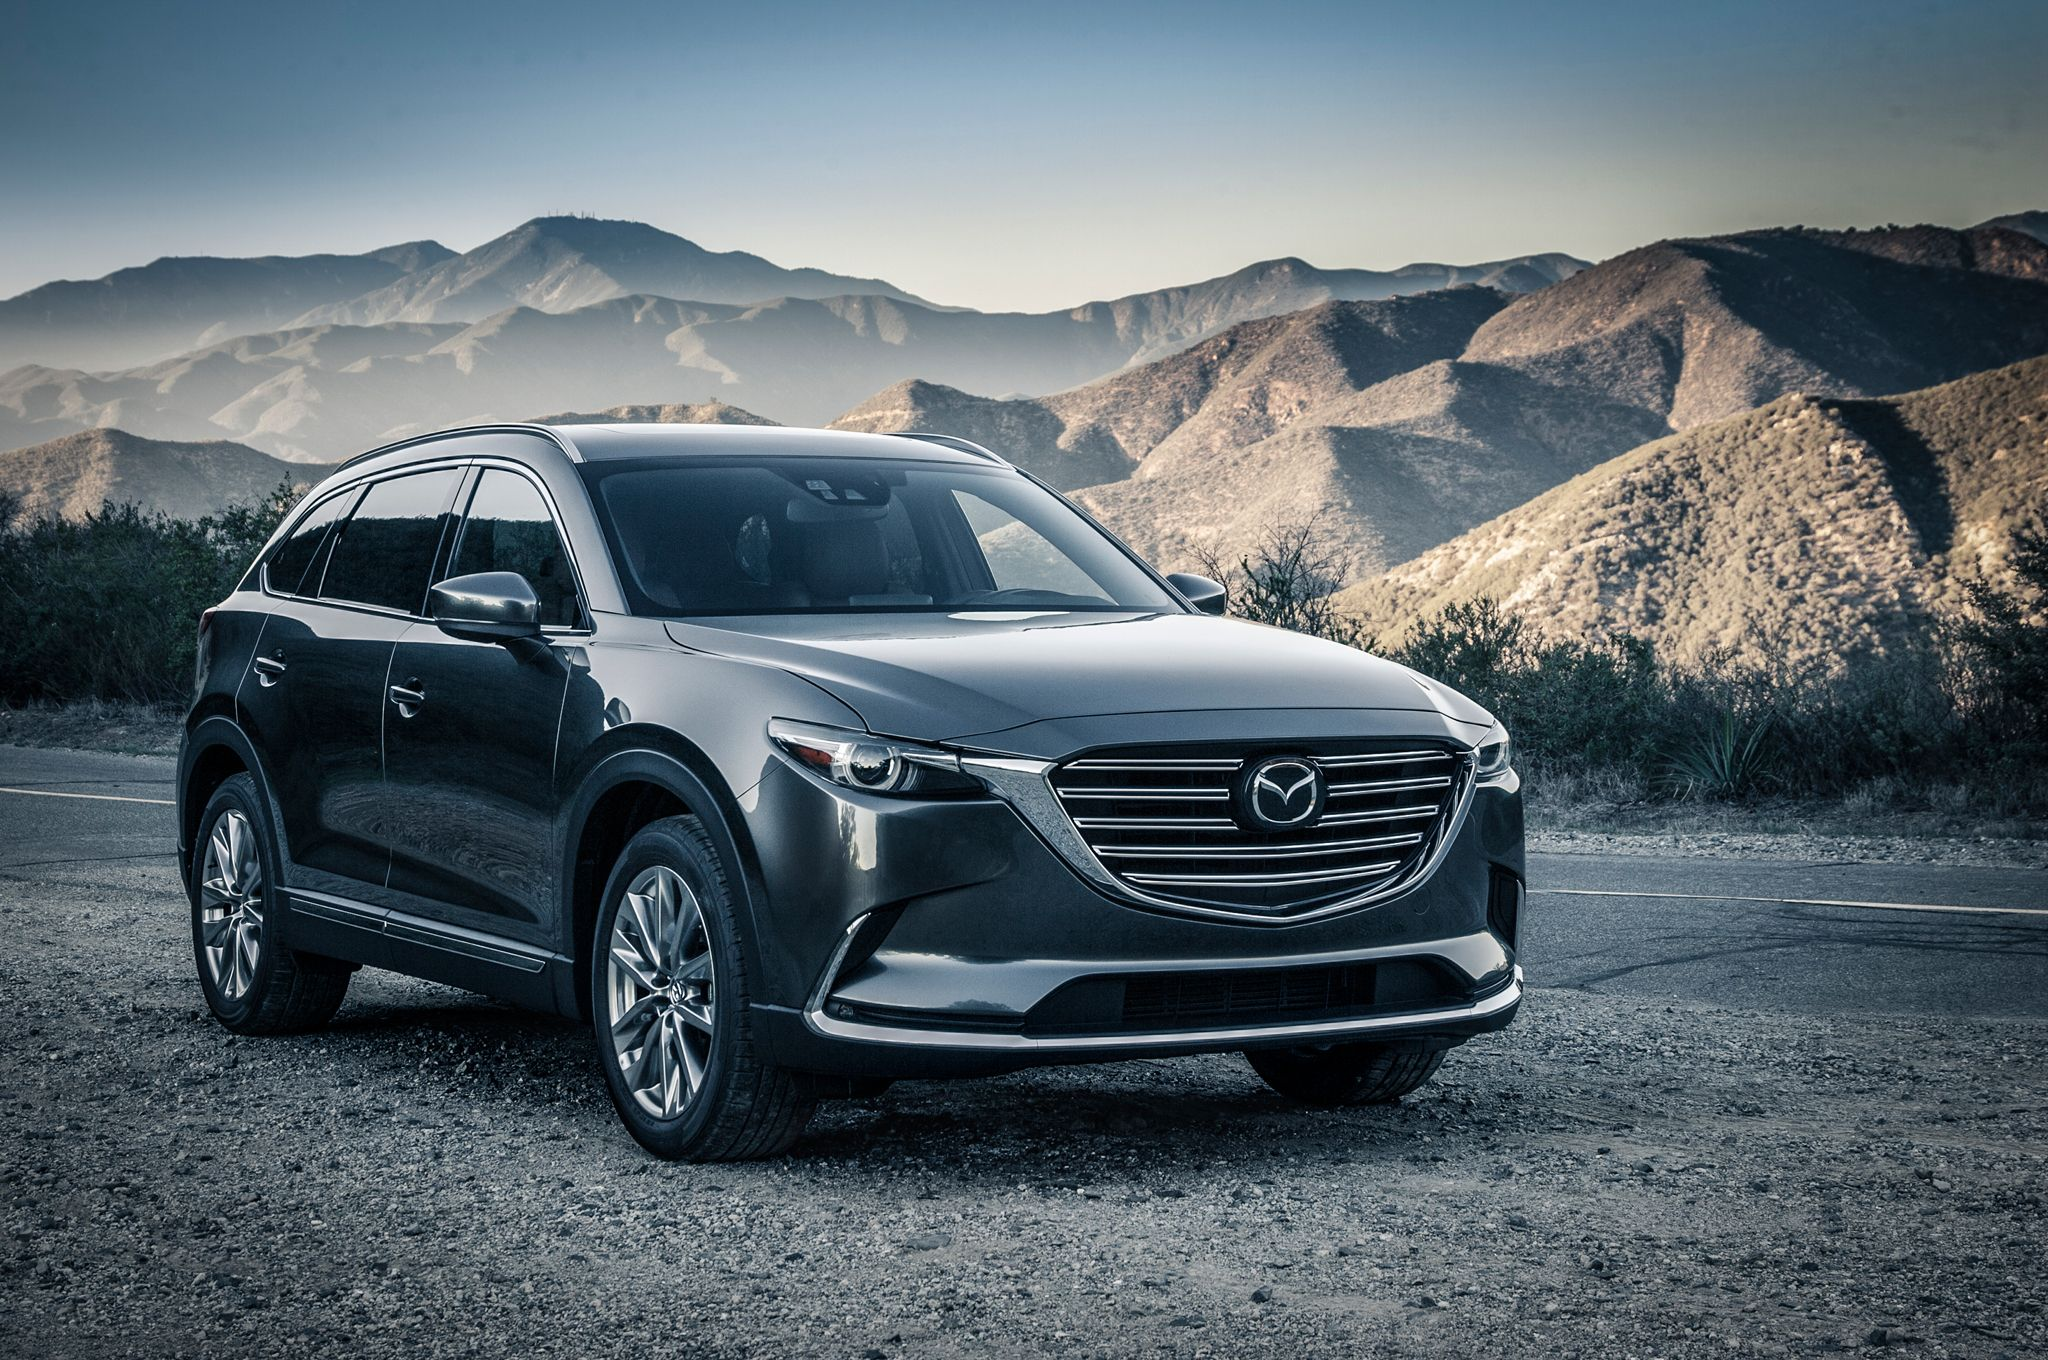 Mazda CX Priced At Increase Of From Last CX - 2016 mazda cx 9 invoice price